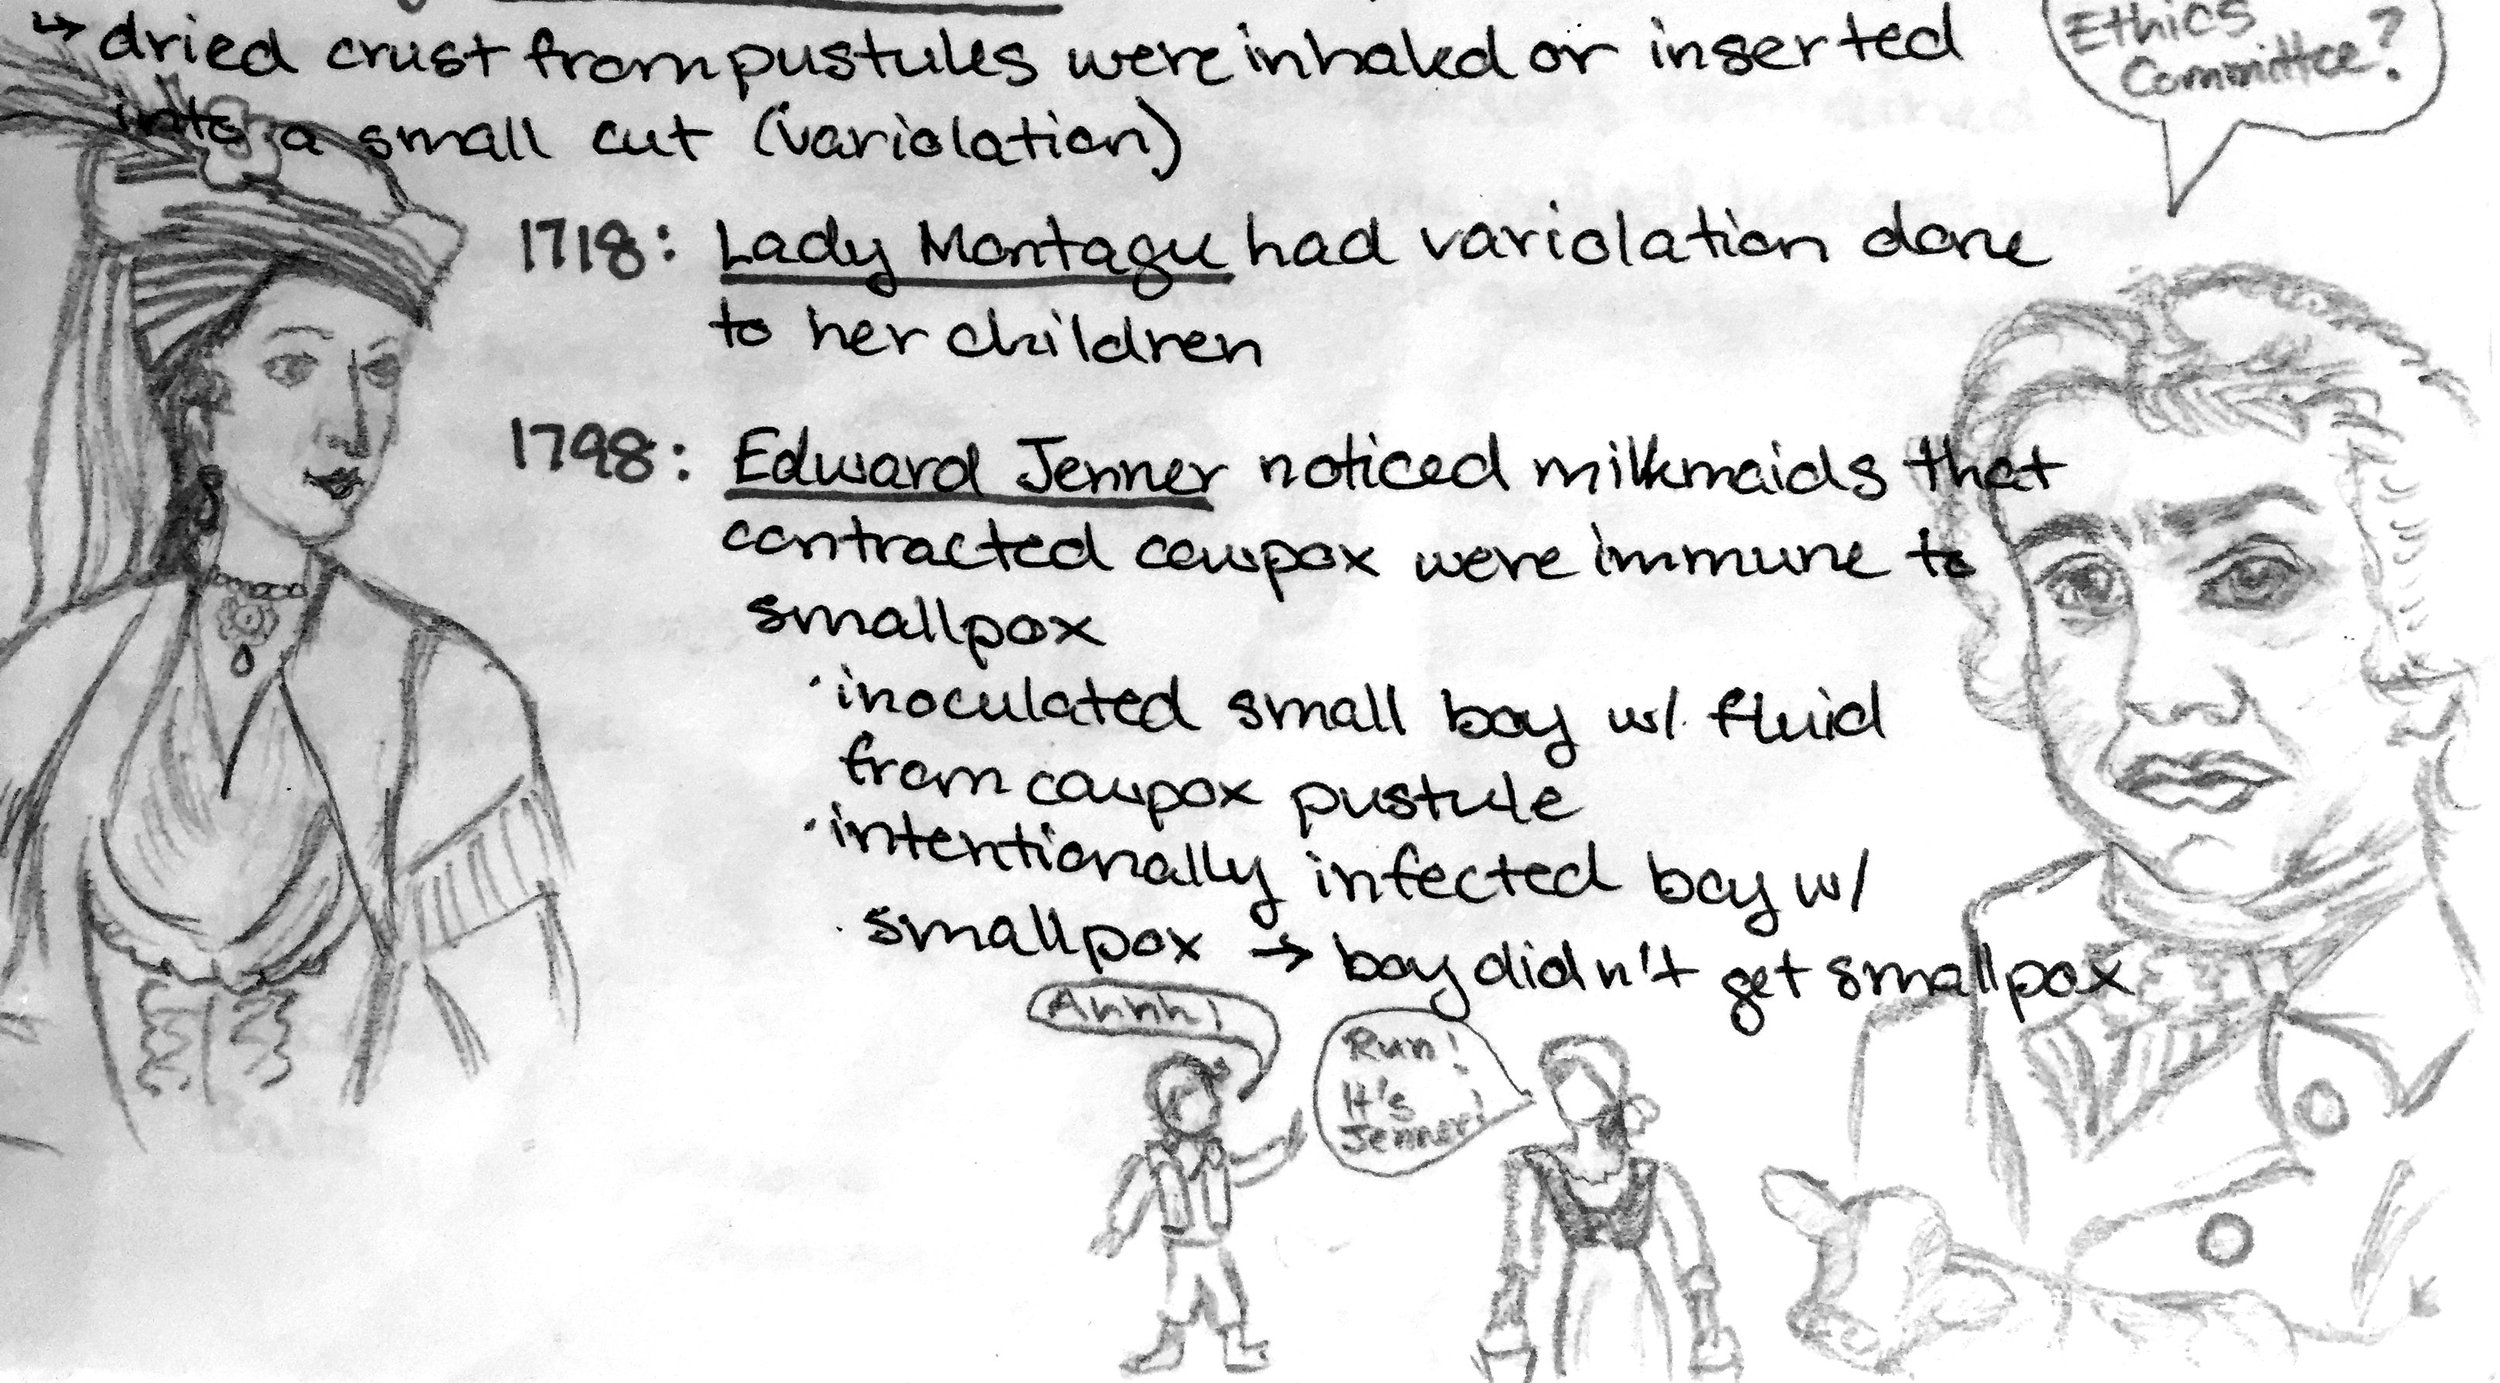 (Yes, those are my undergrad immunology notes.)